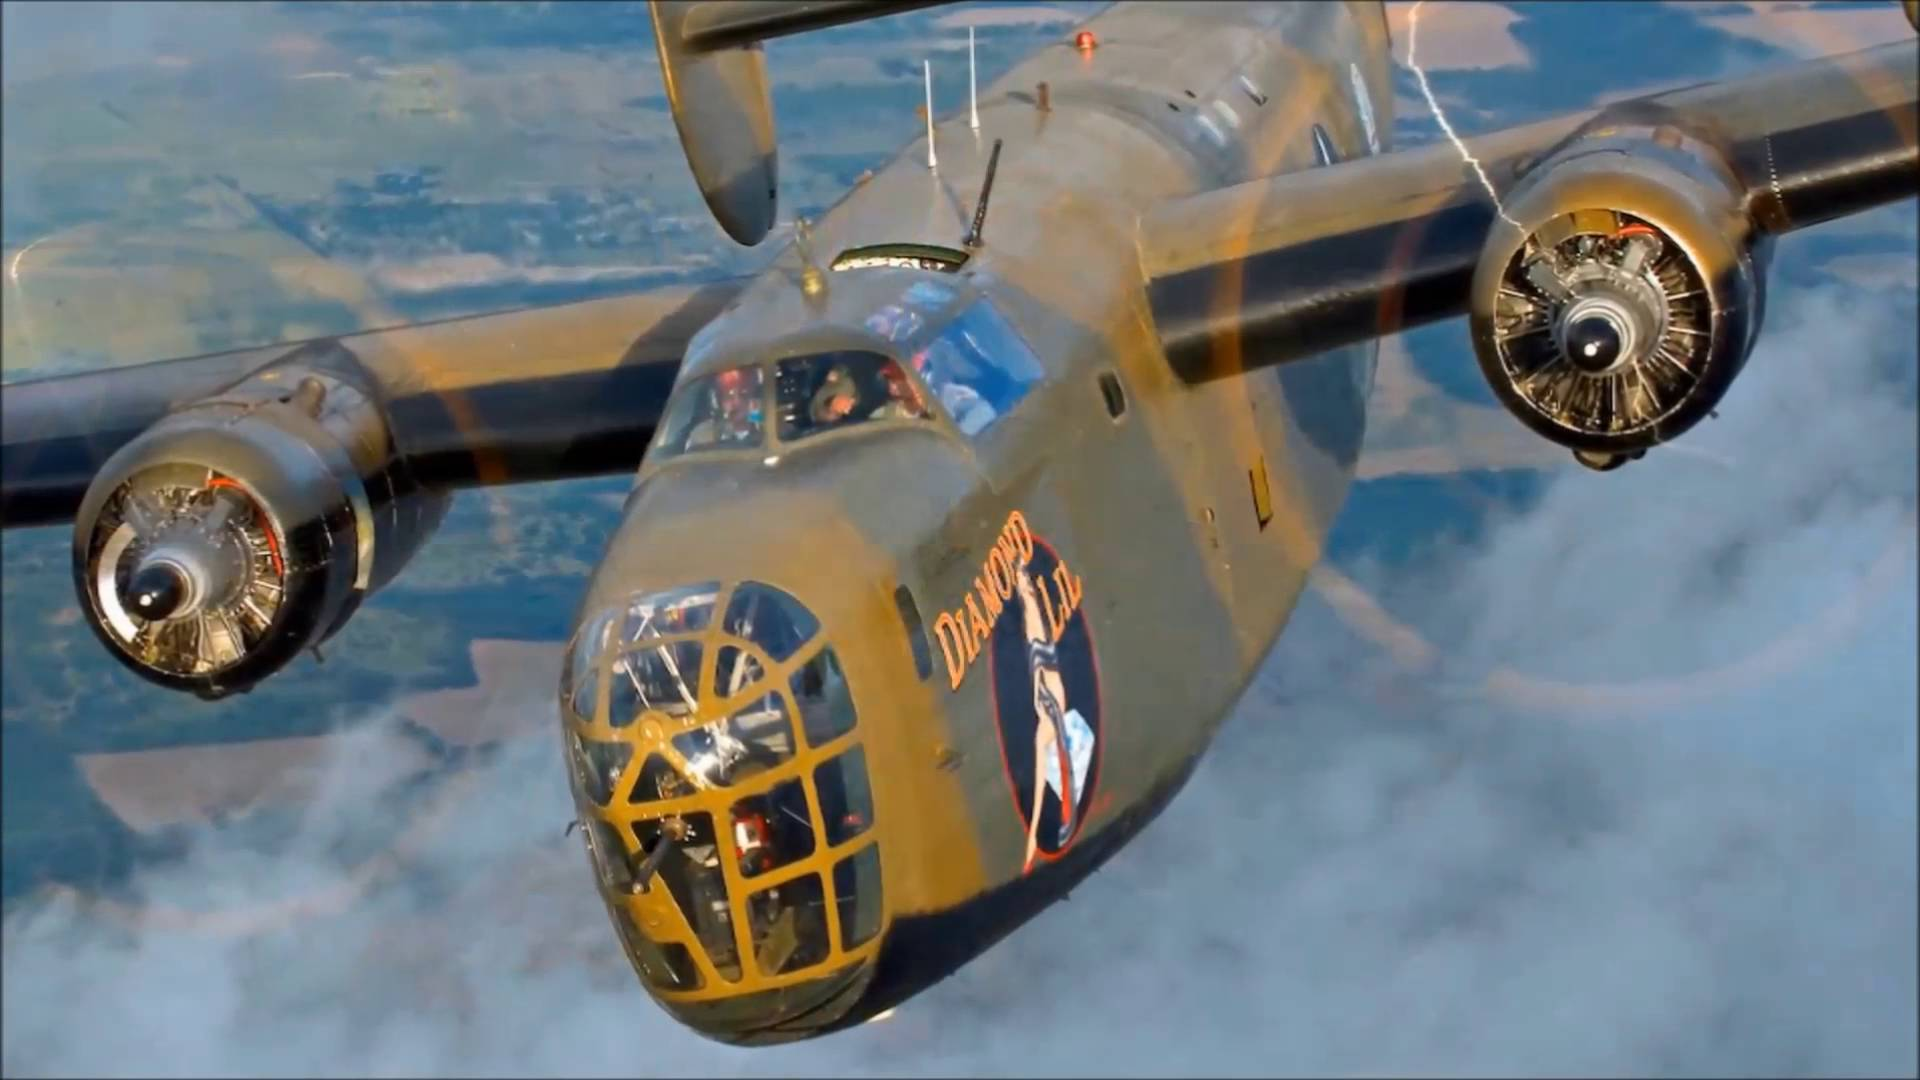 1920x1080 - Consolidated B-24 Liberator Wallpapers 15